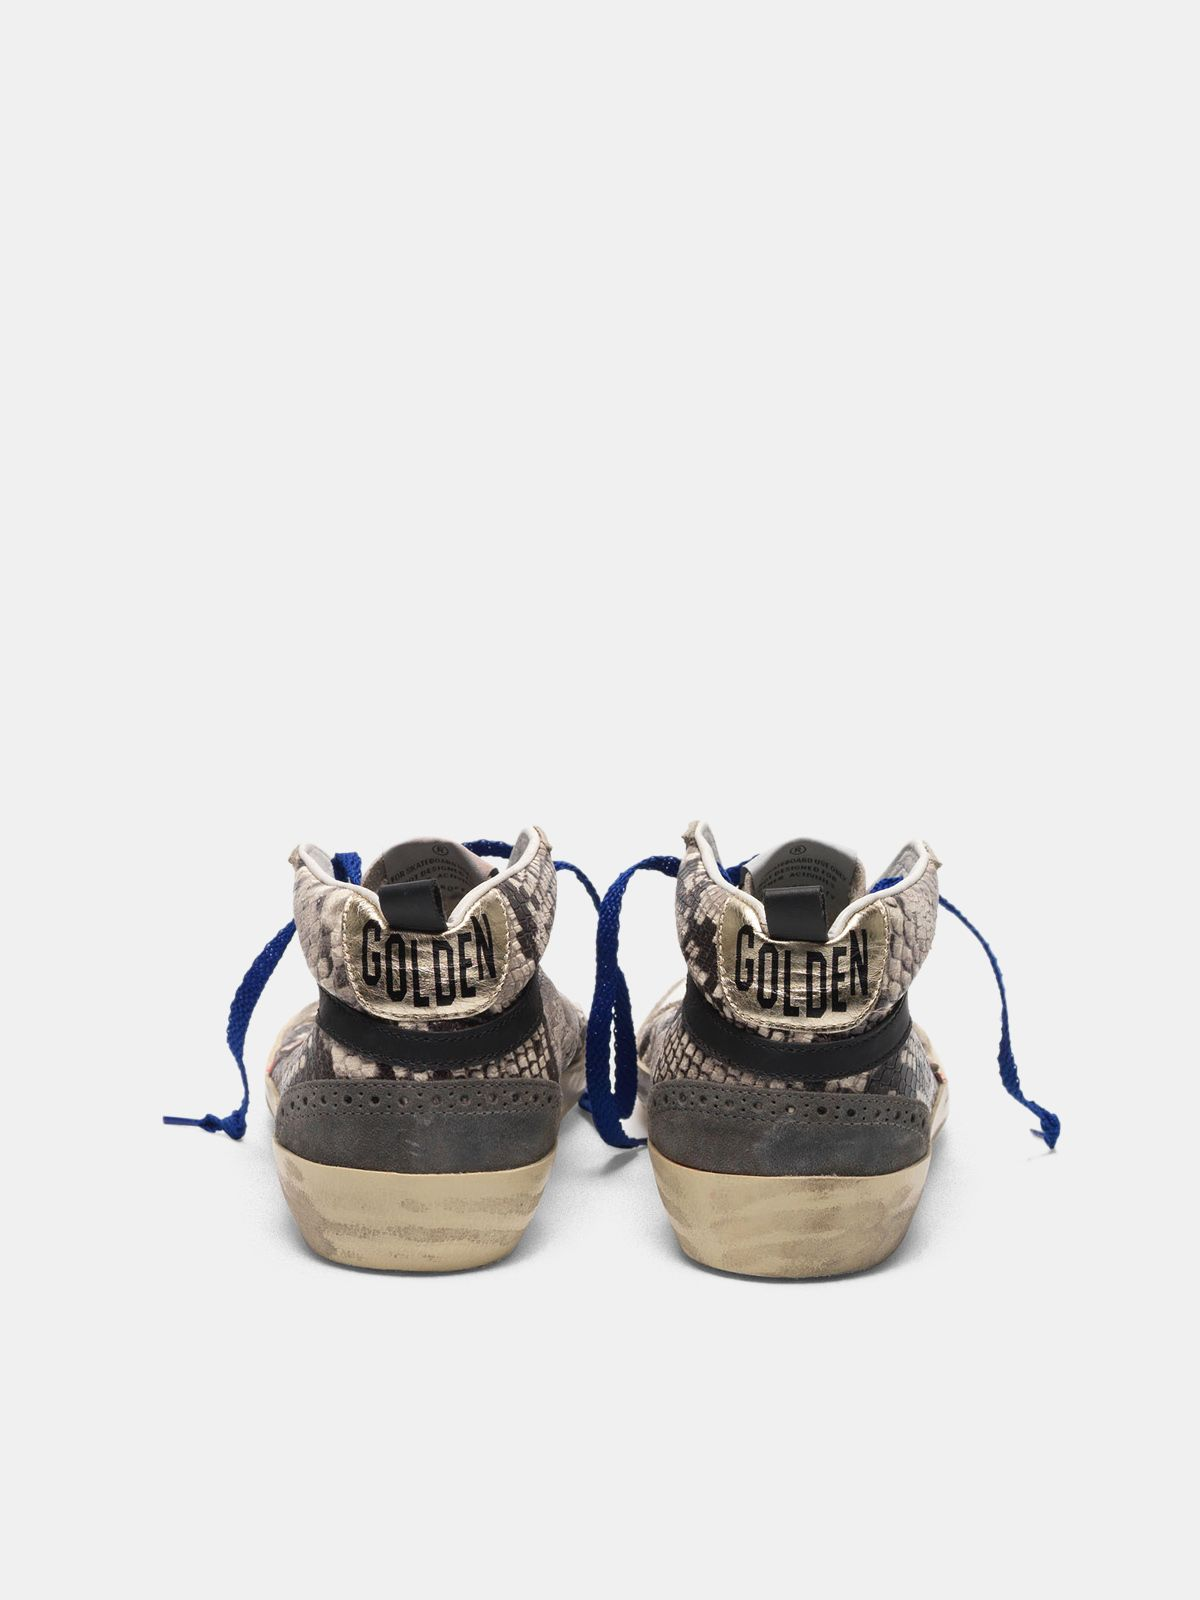 Golden Goose - Mid Star sneakers in snakeskin print leather with fuchsia star in